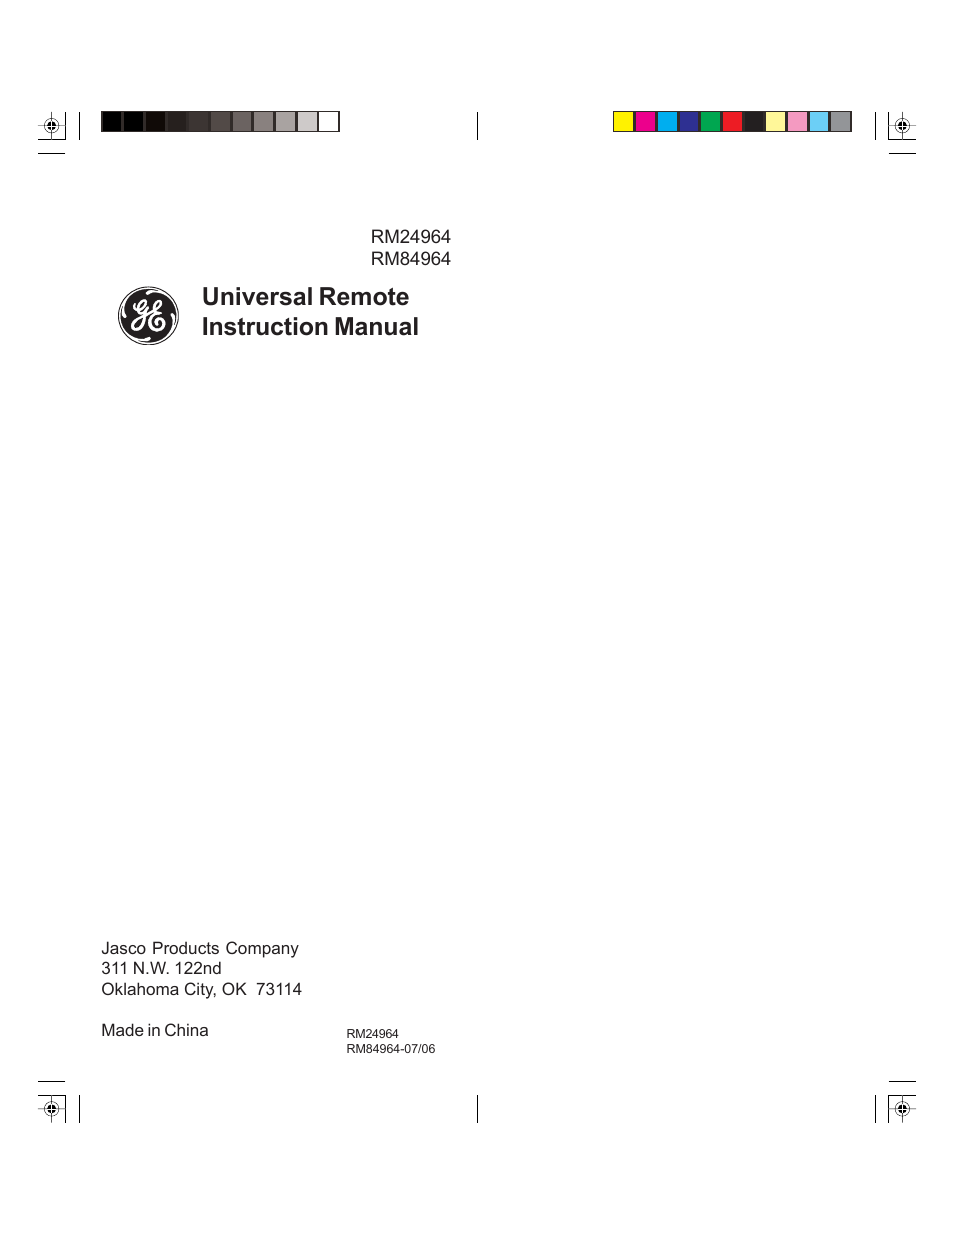 Universal remote instruction manual | GE 24964 GE Universal 3-Device Slider Remote  User Manual | Page 9 / 9